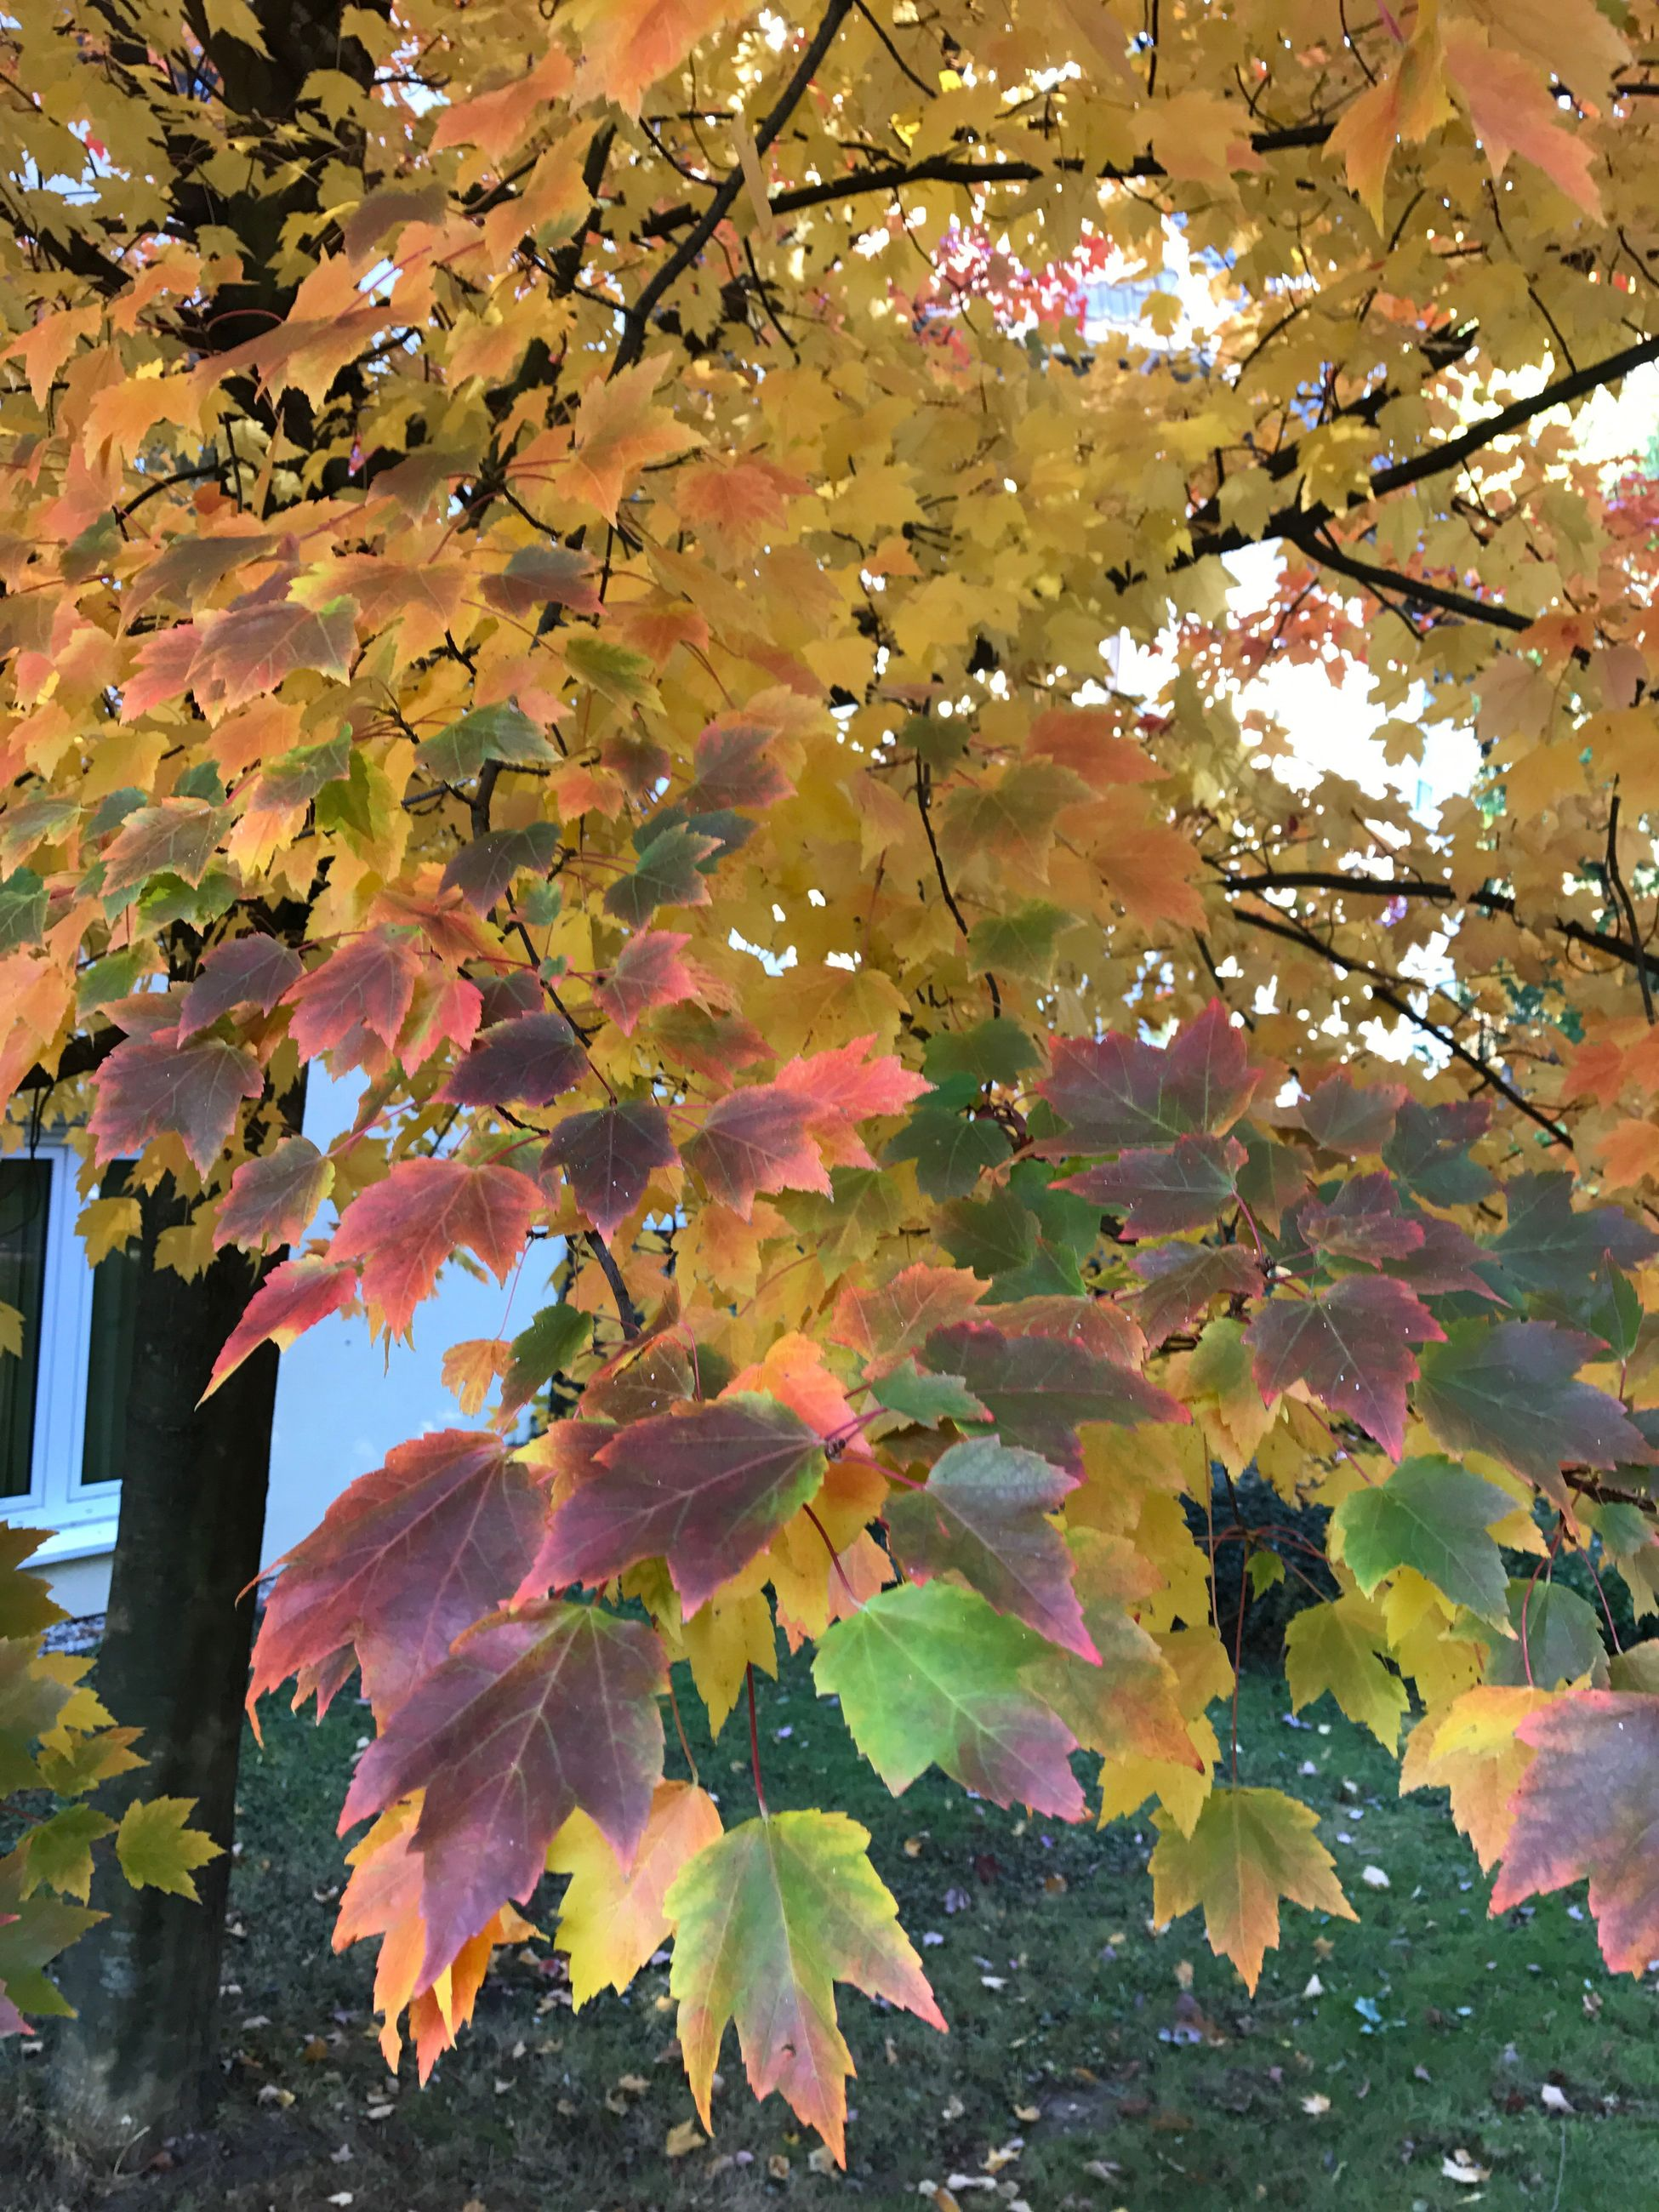 leaf, tree, branch, change, autumn, growth, season, close-up, low angle view, beauty in nature, day, nature, maple tree, freshness, outdoors, green color, scenics, springtime, fragility, leaves, natural condition, vibrant color, tranquility, majestic, green, pink color, growing, no people